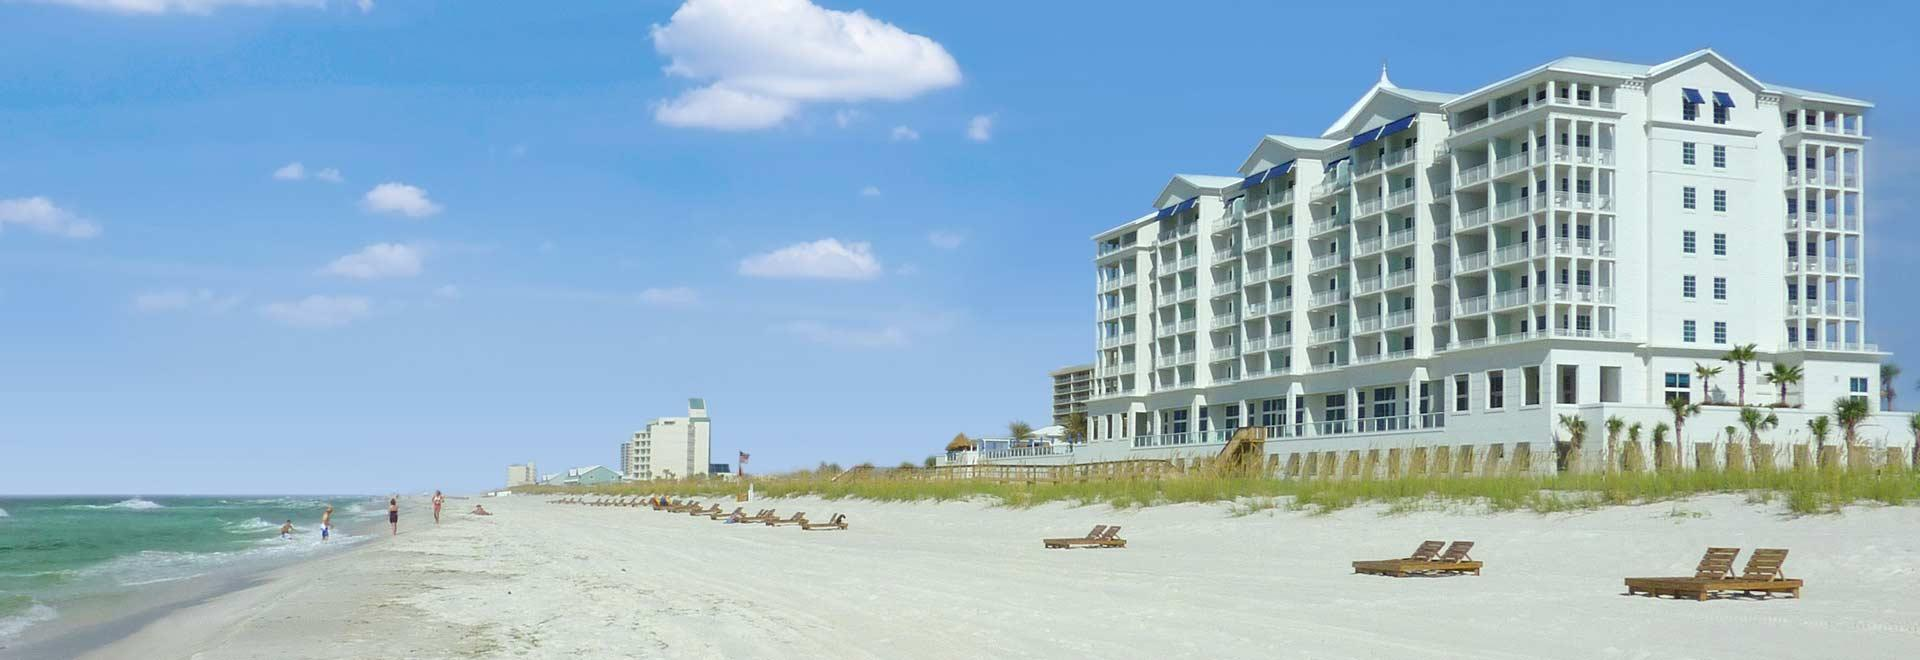 pensacola beach hotels compare best hotels in pensacola beach kayak rh kayak co in